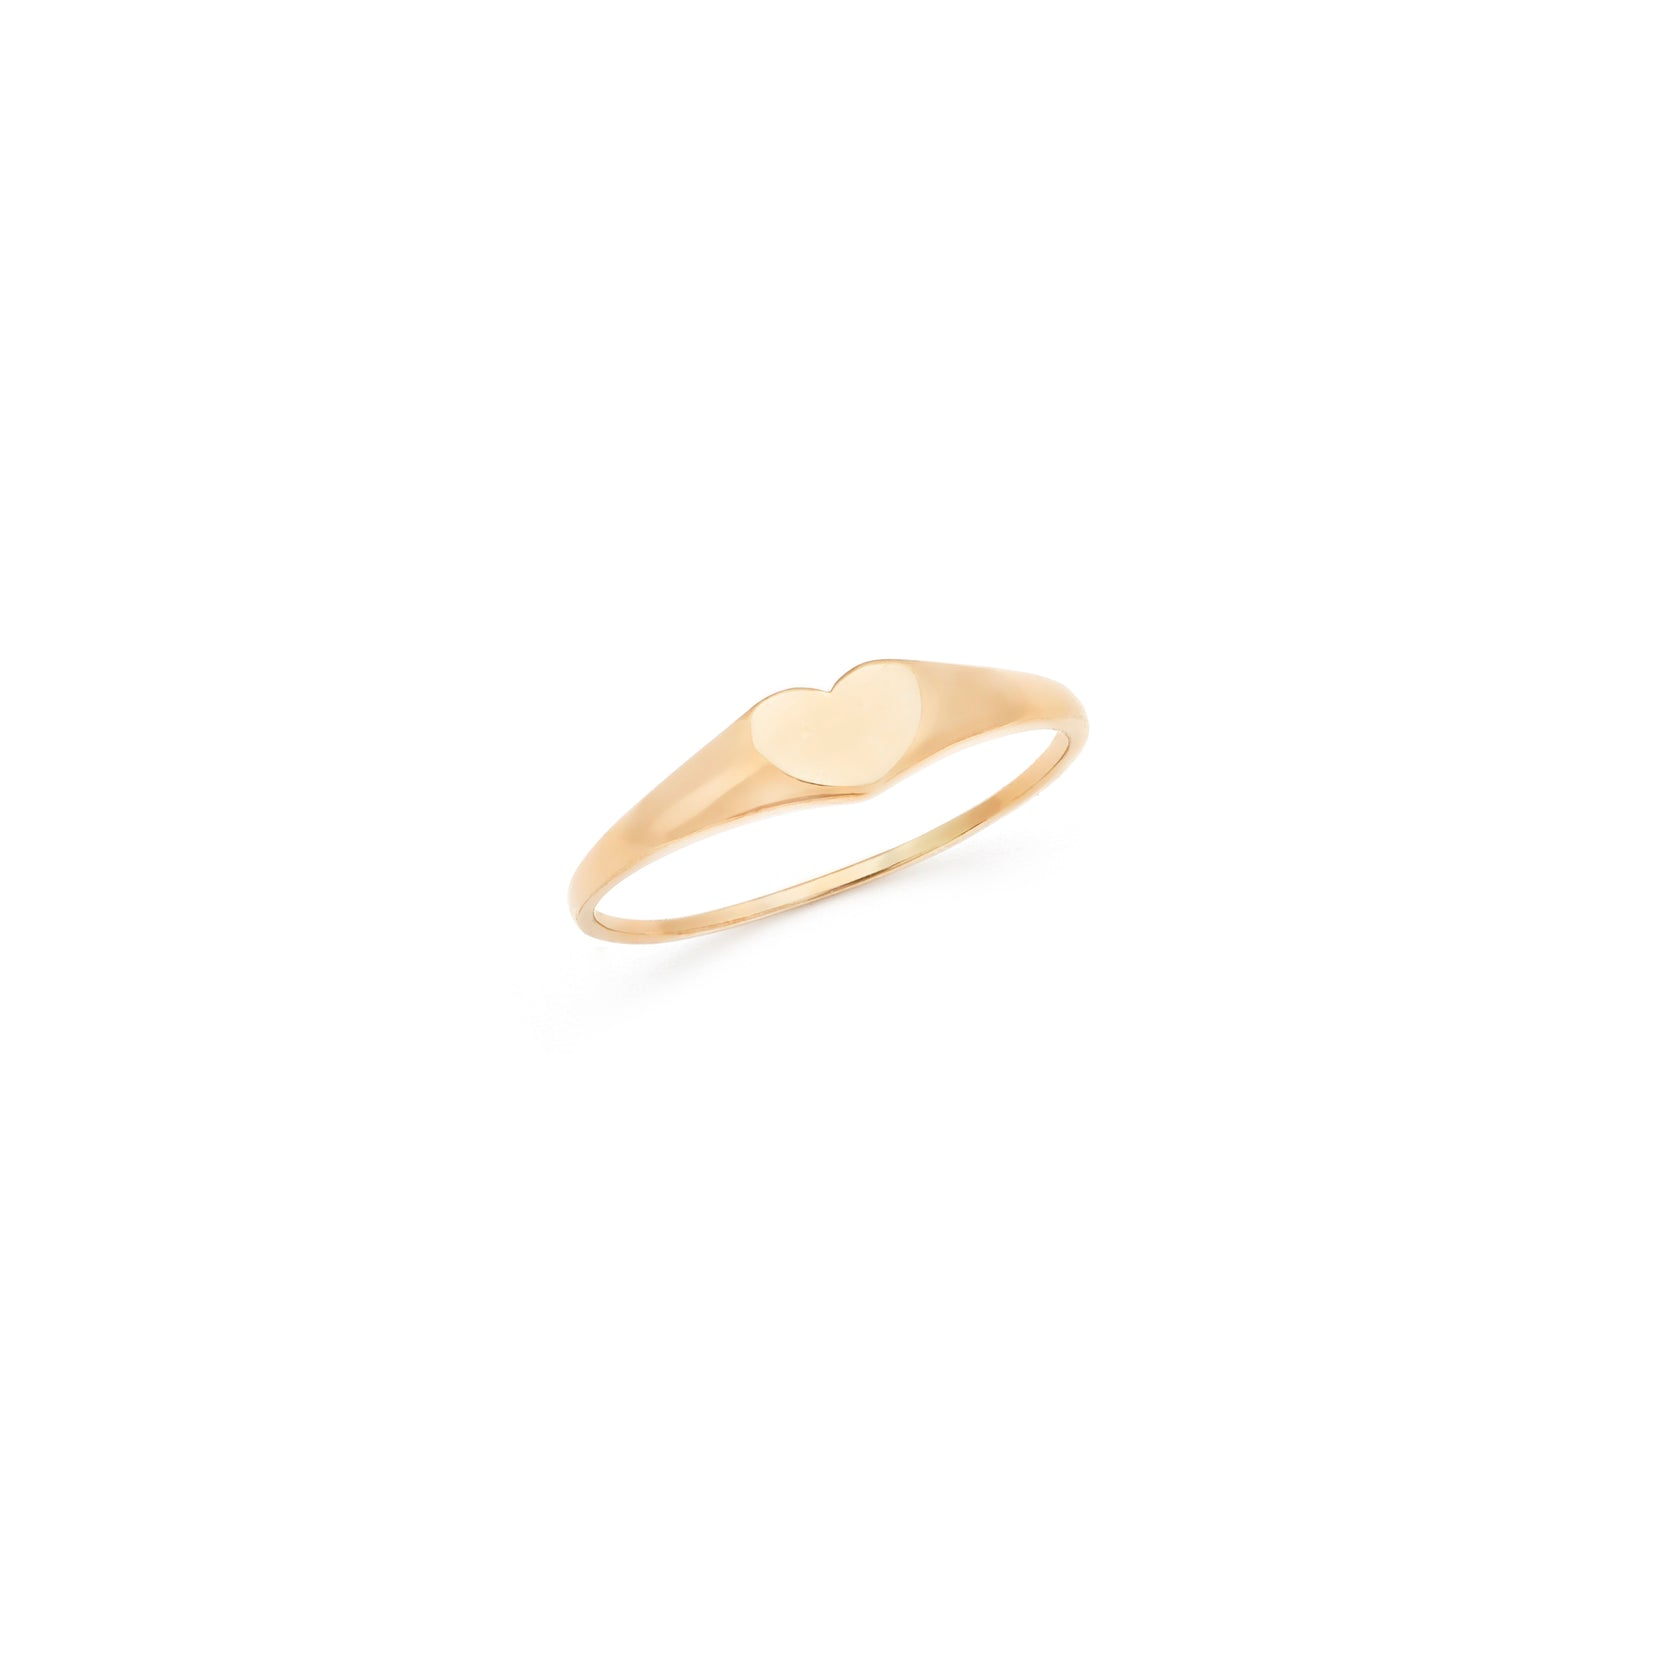 Mini Heart Signet - 14k Solid Gold